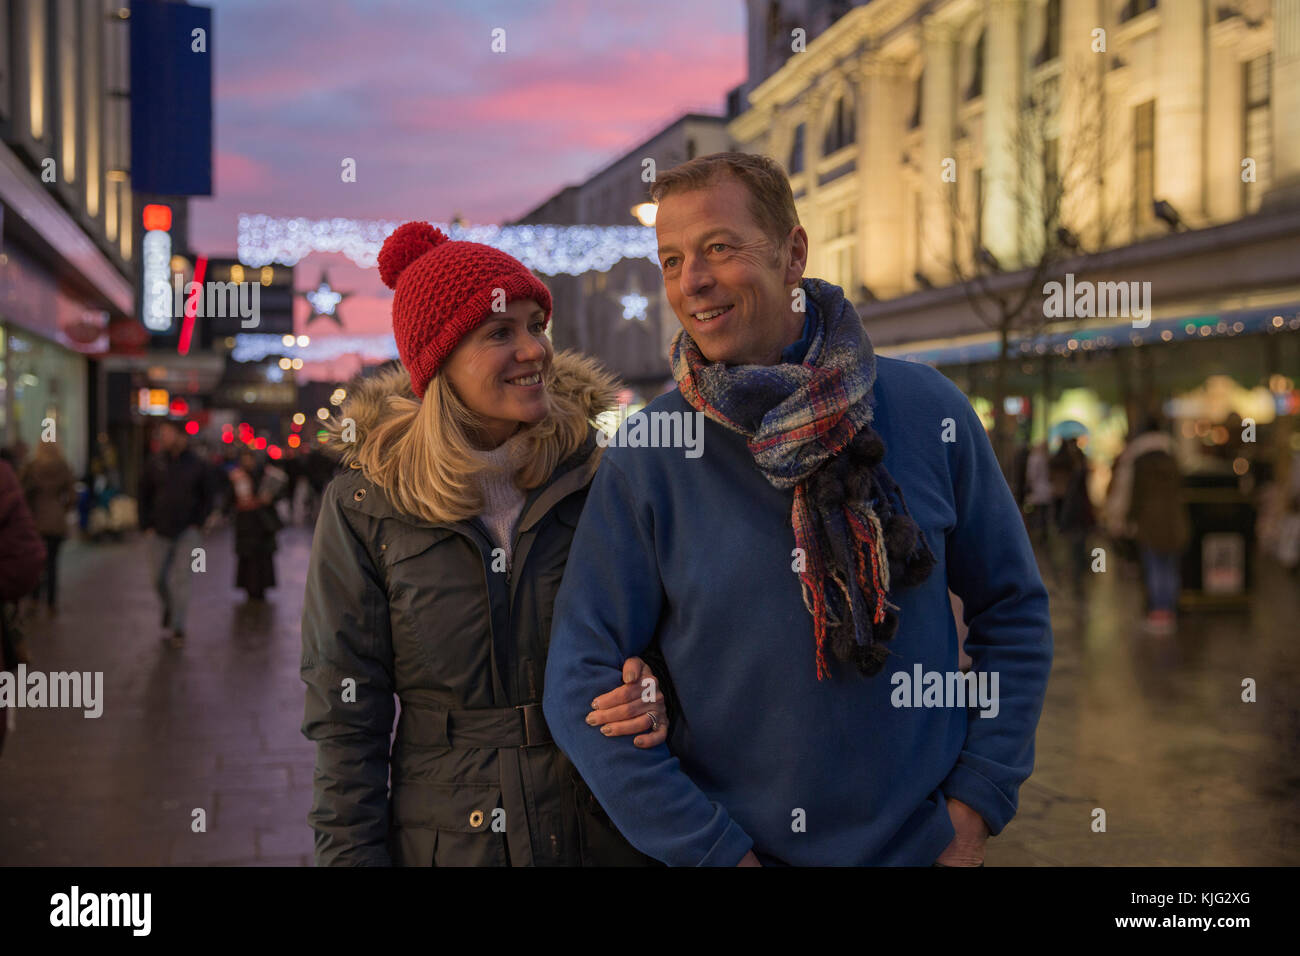 Mature couple are enjoying an evening stroll through town at Christmas time. Stock Photo